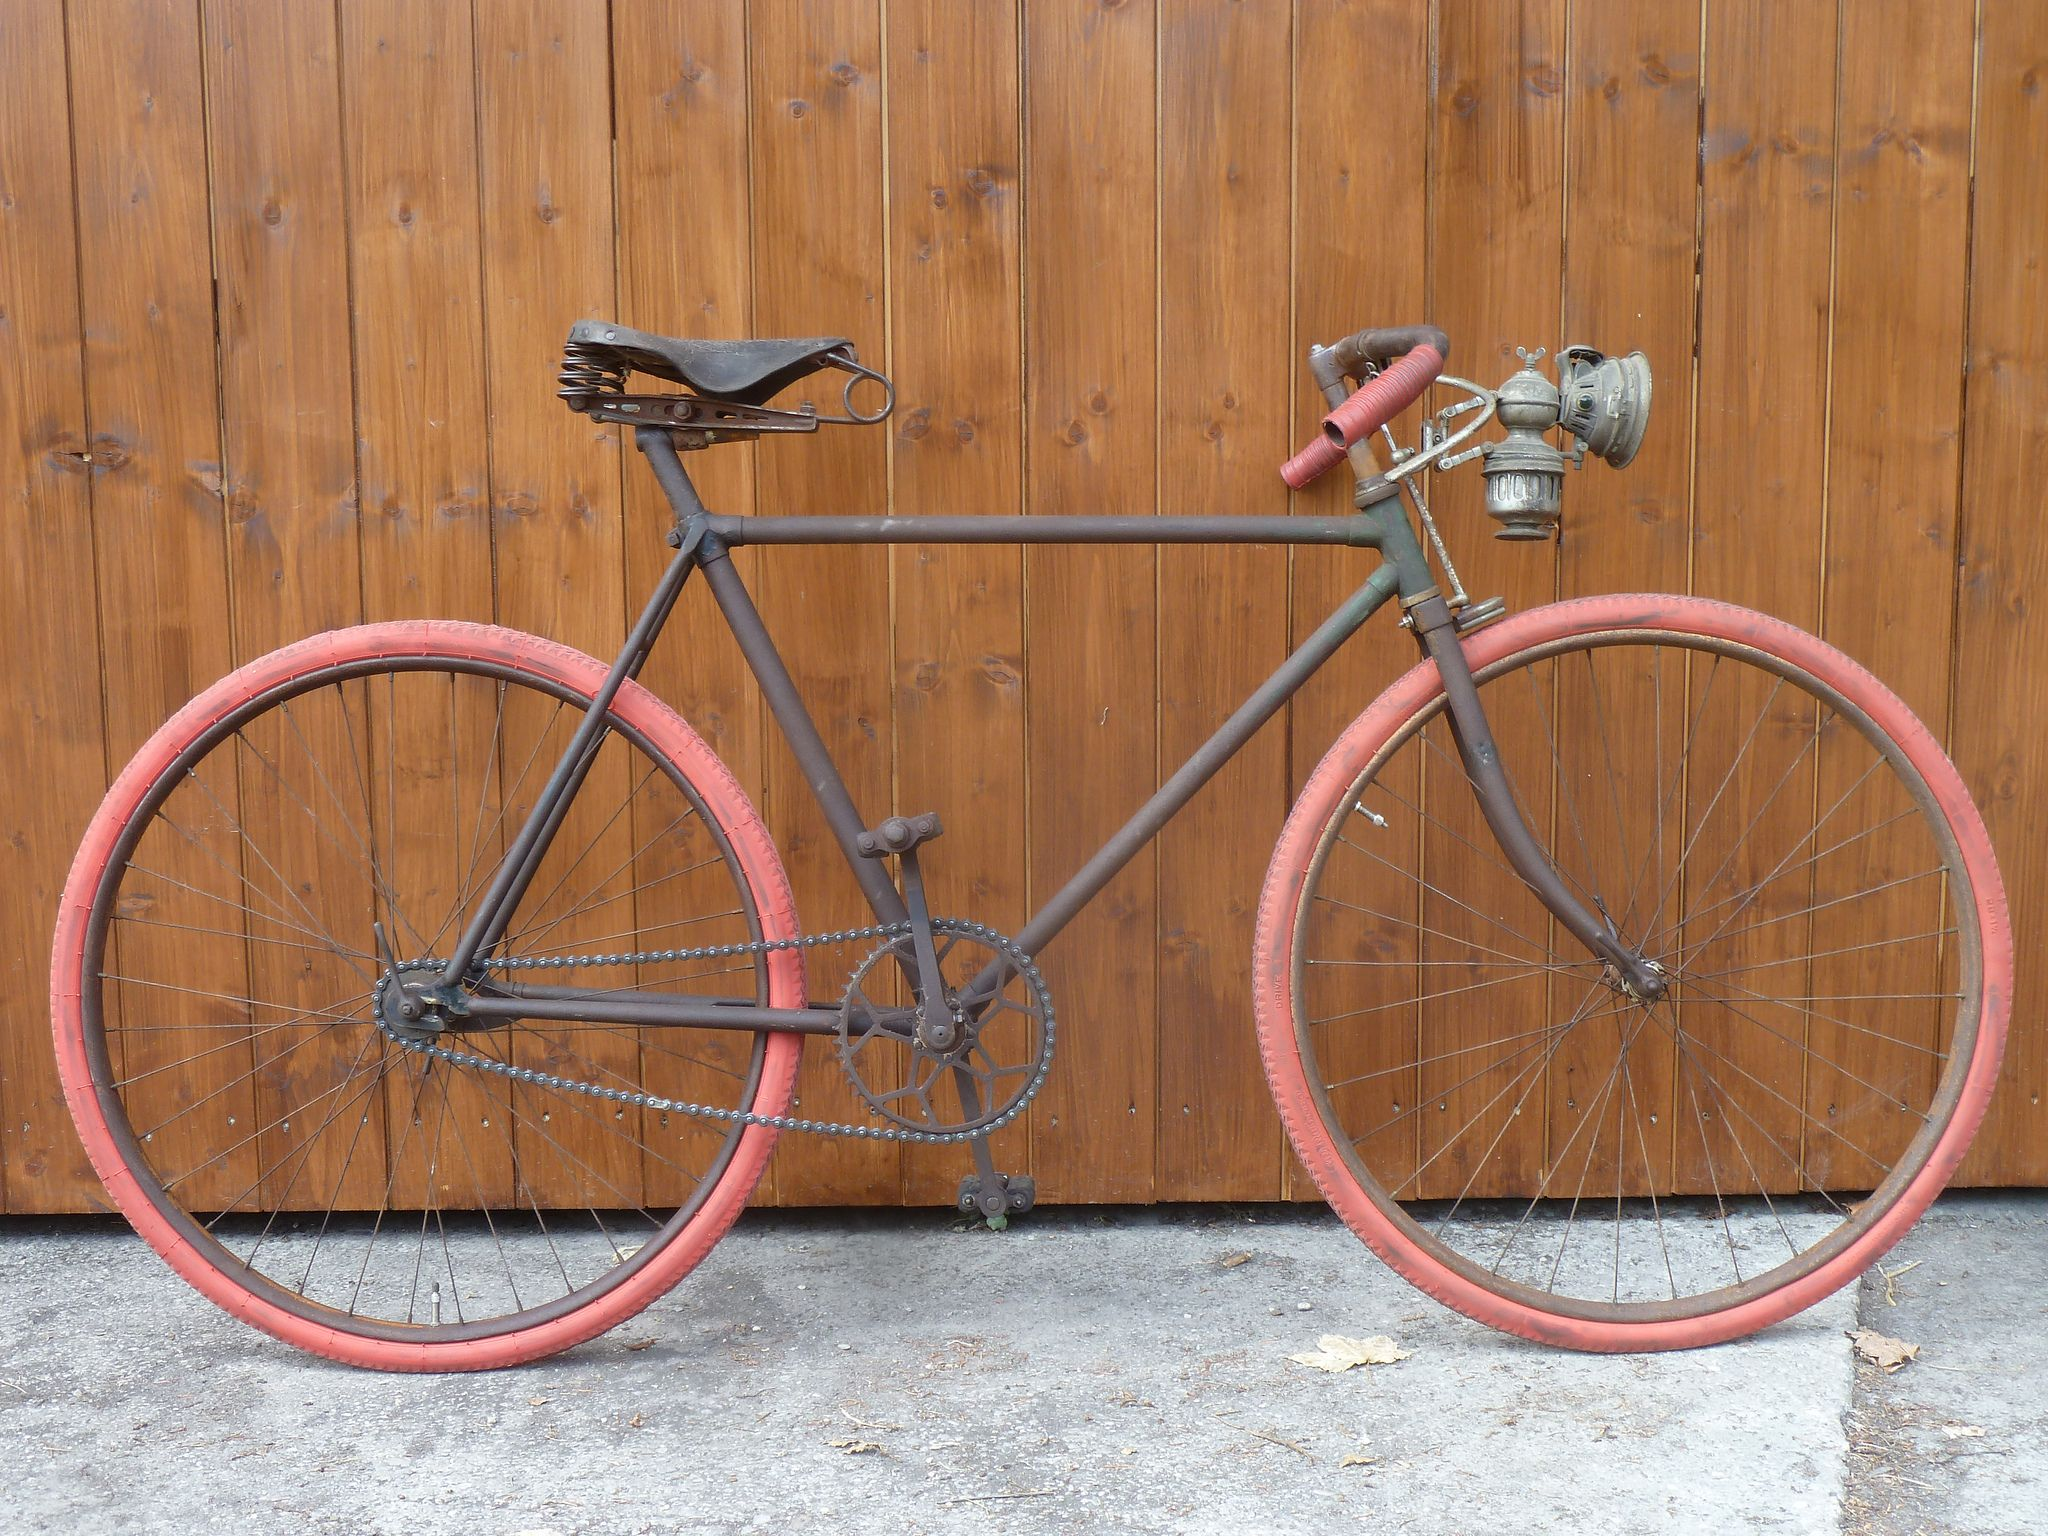 Rusty Old Racer Retro Bicycle Vintage Bicycles Electric Bicycle